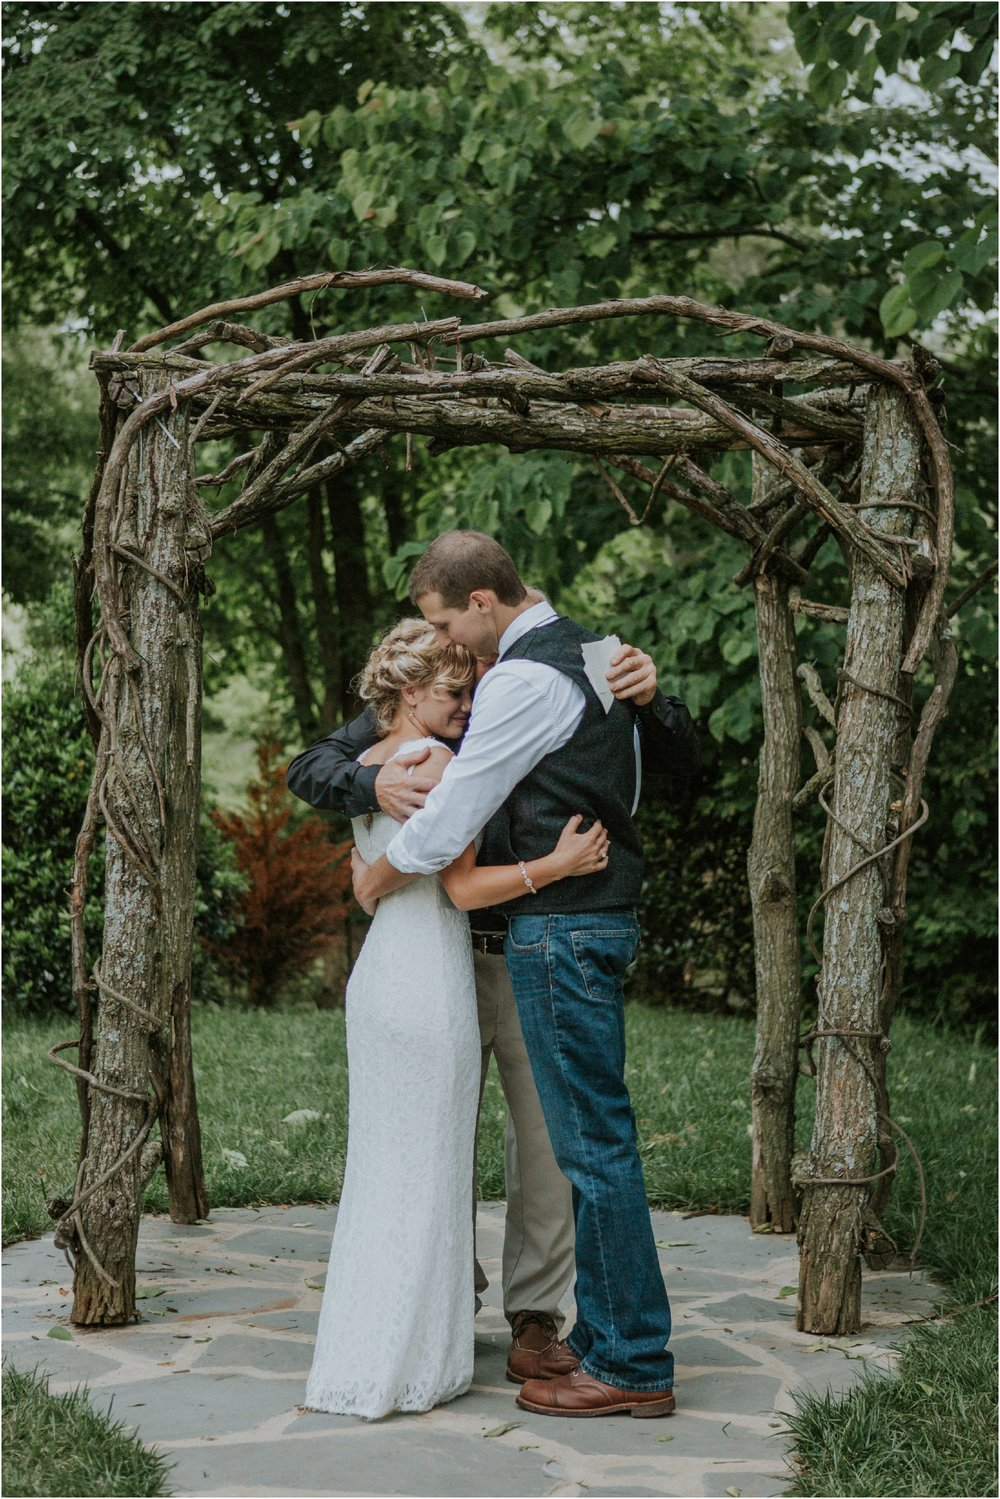 the-millstone-limestone-rustic-intimate-outdoors-backyard-wedding-wildflowers-tennessee_0091.jpg